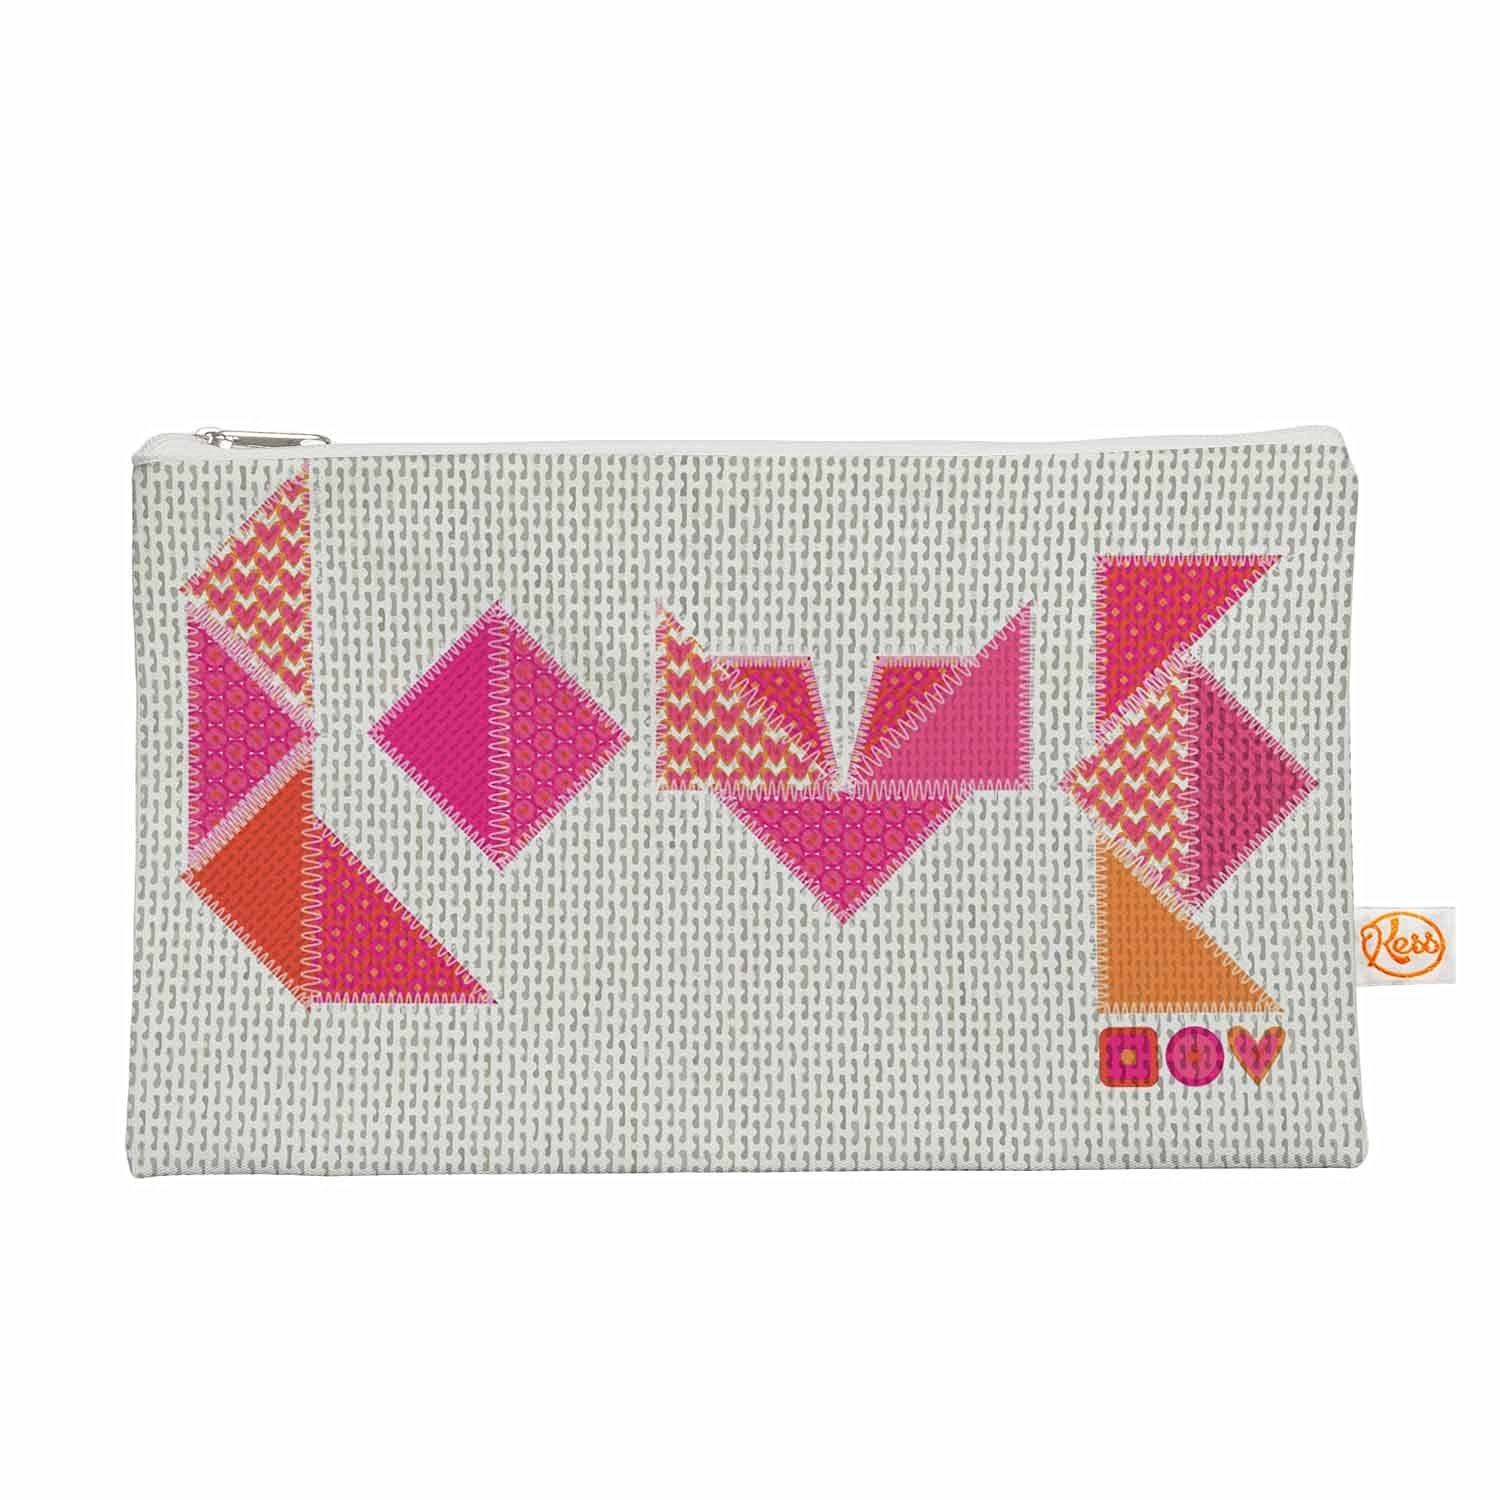 """Kess InHouse """"Stitched Love"""" Everything Bag, 12.5"""" x 8.5"""" (MB3009AEP02)"""